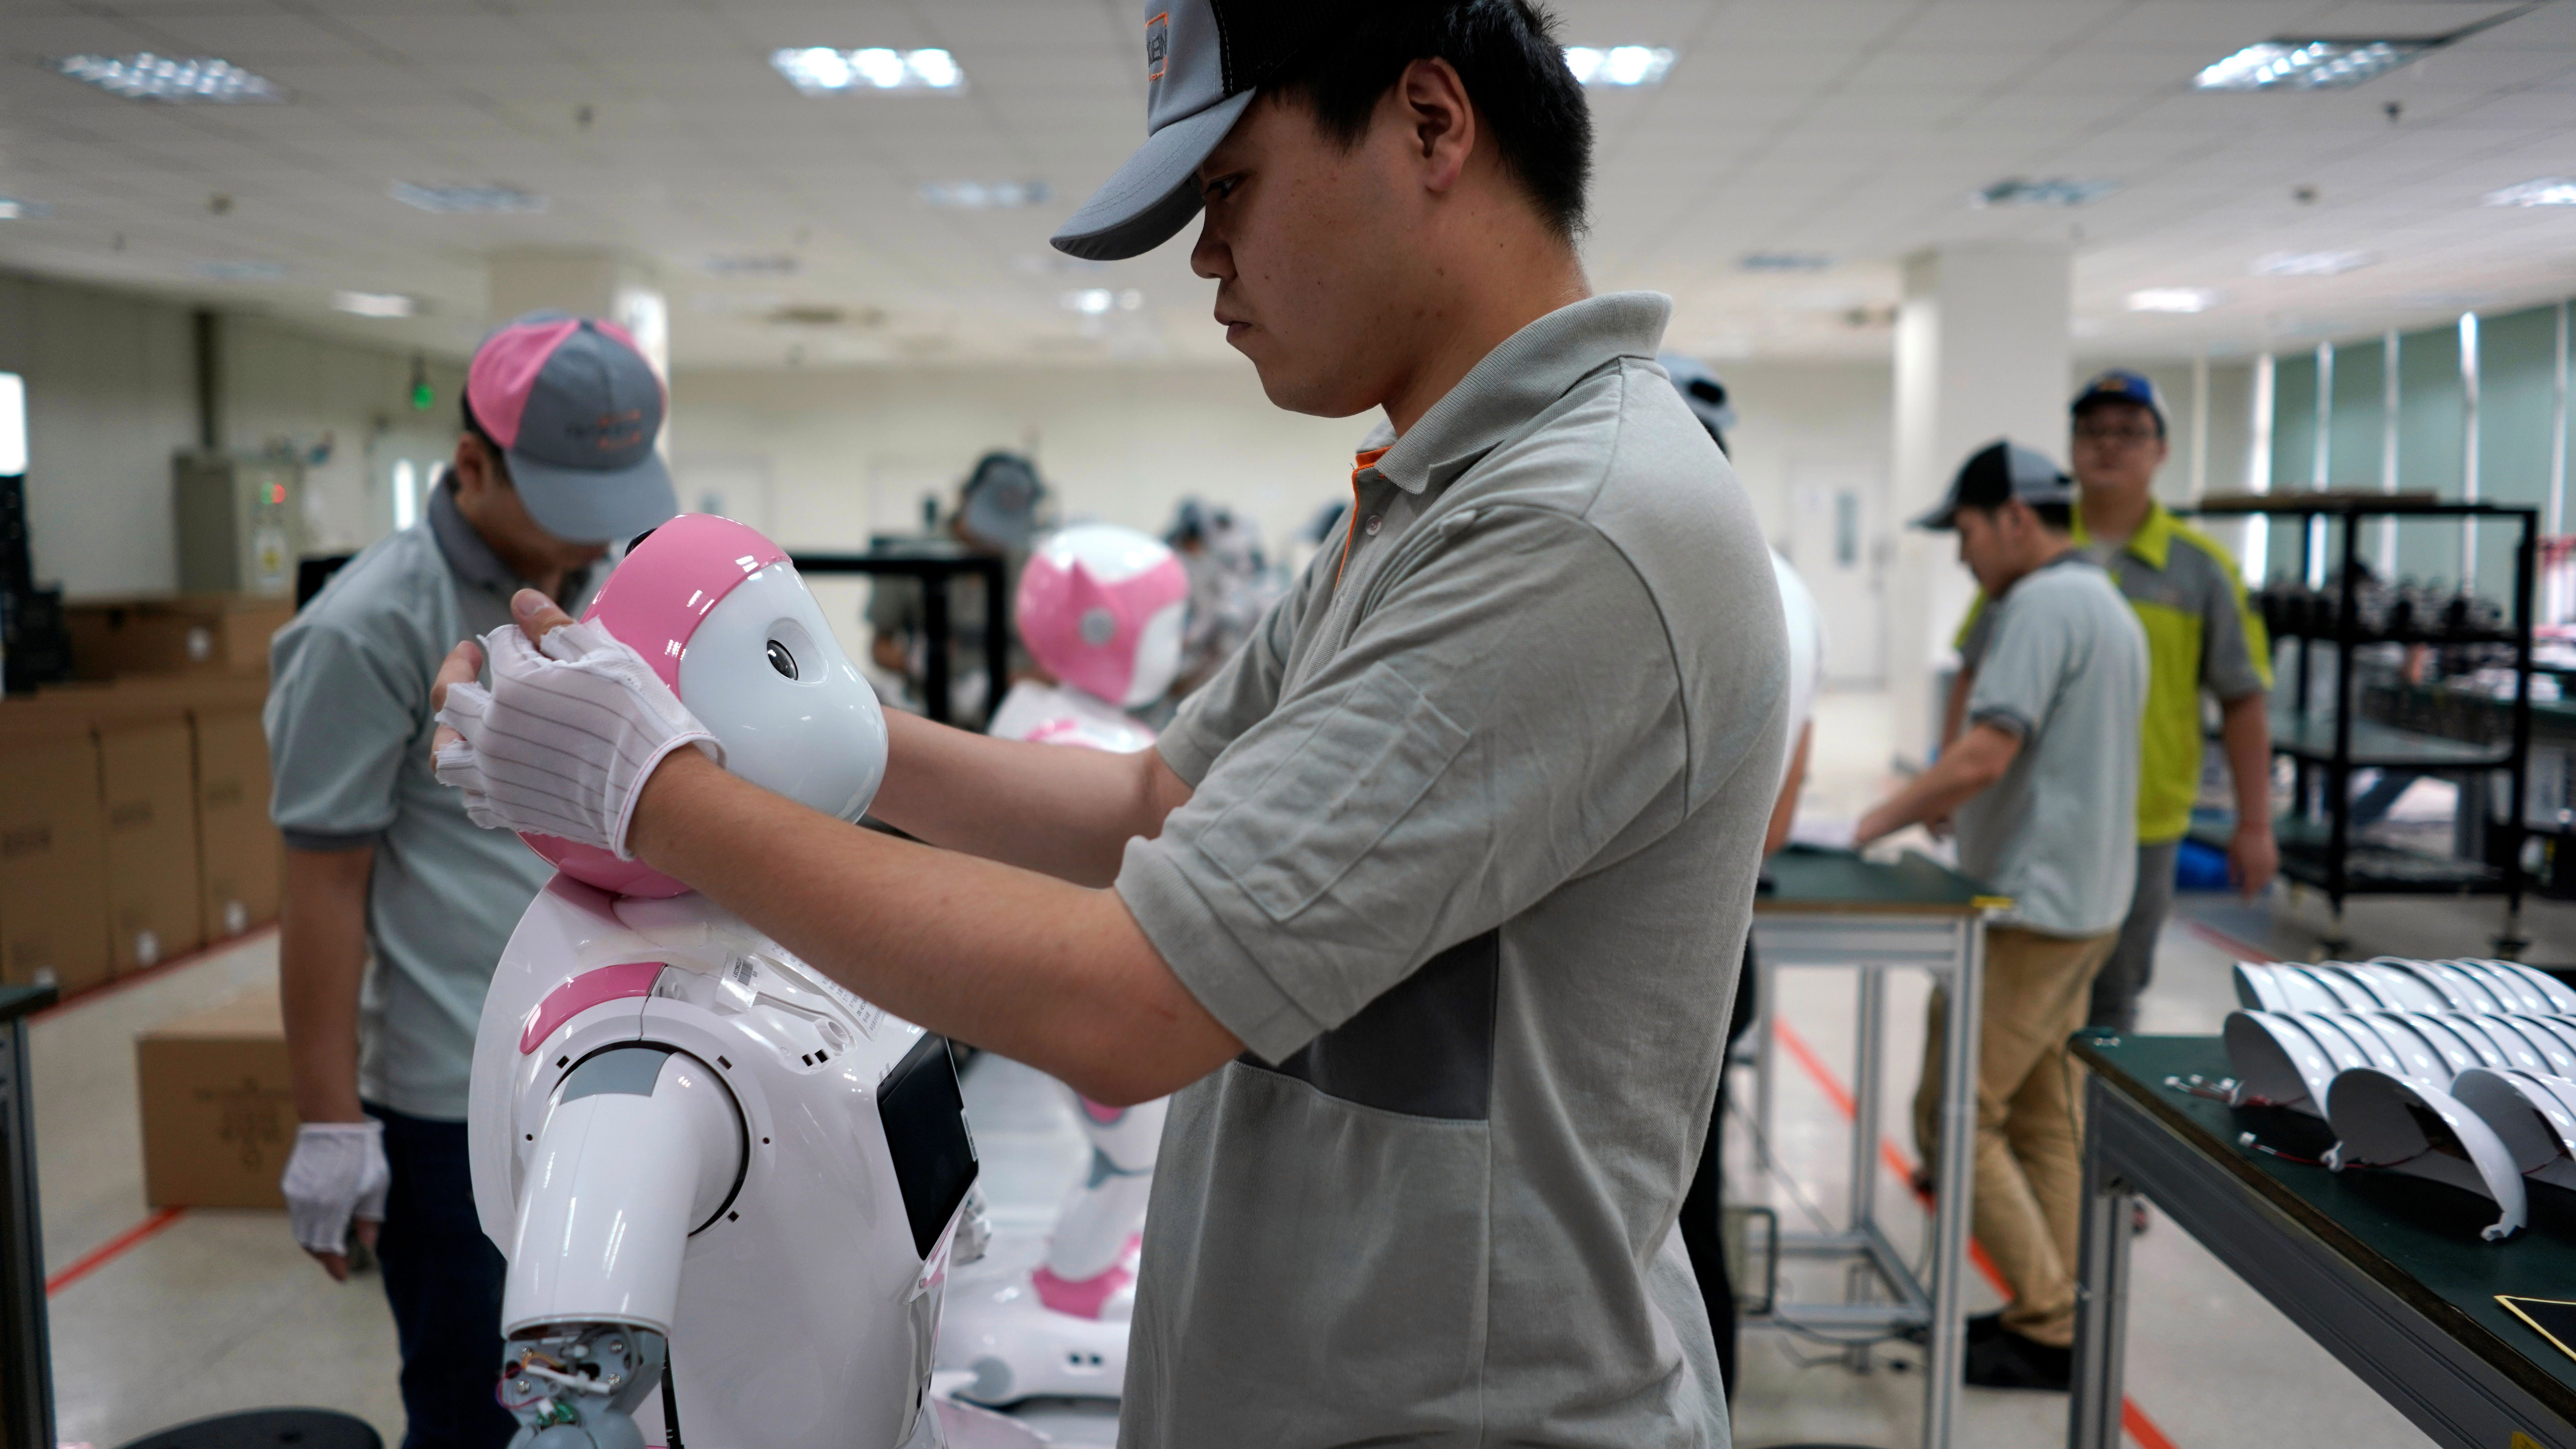 A worker puts finishing touches to an iPal social robot, designed by AvatarMind, at an assembly plant in Suzhou, Jiangsu province, China July 4, 2018. Designed to offer education, care and companionship to children and the elderly, the 3.5-feet tall humanoid robots come in two genders and can tell stories, take photos and deliver educational or promotional content.